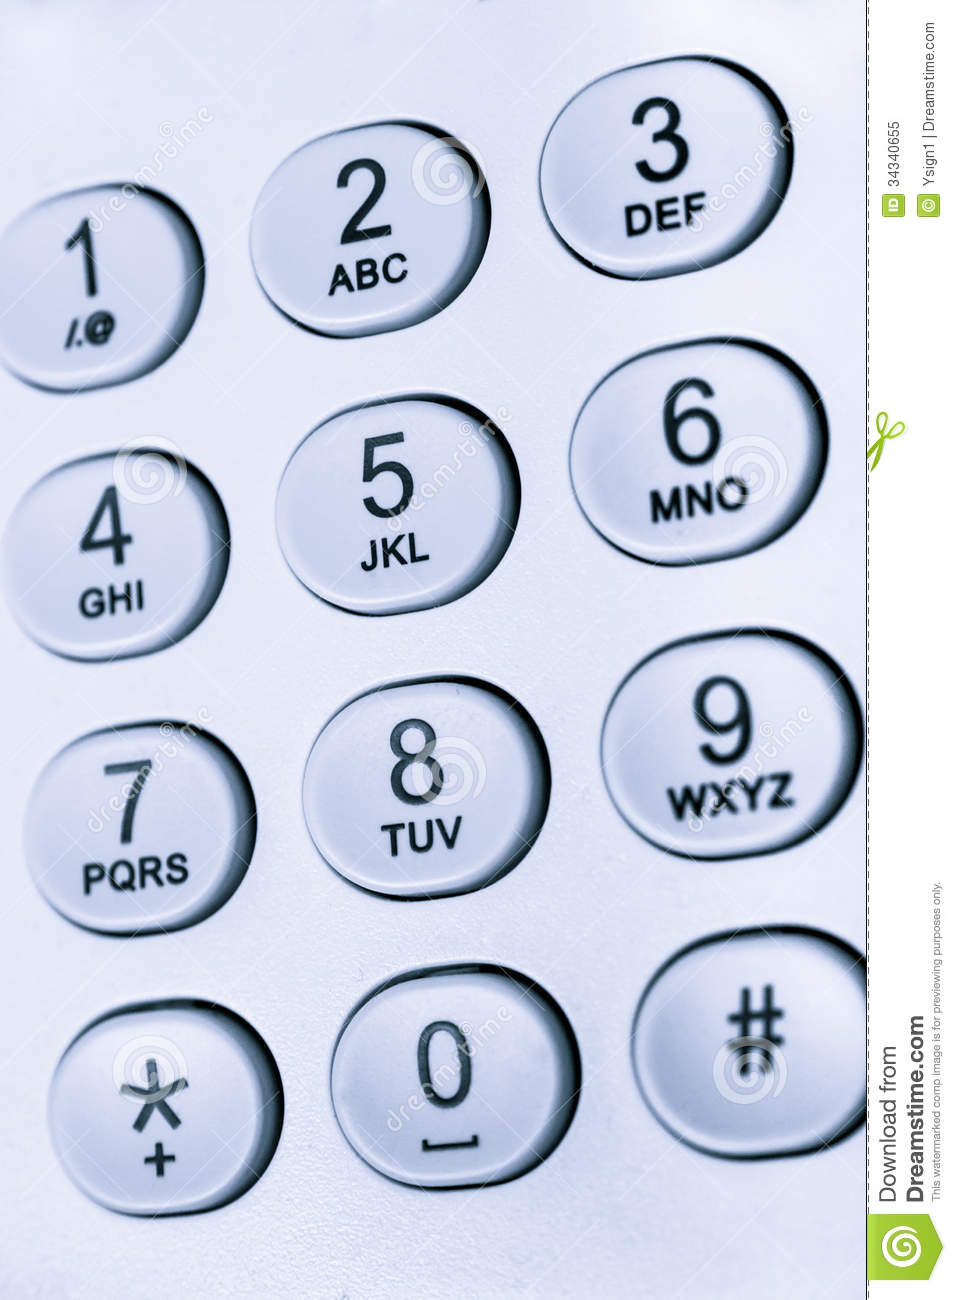 letter to number keypad with numbers and letters stock image image 34340655 23250 | keypad numbers letters photographed above 34340655